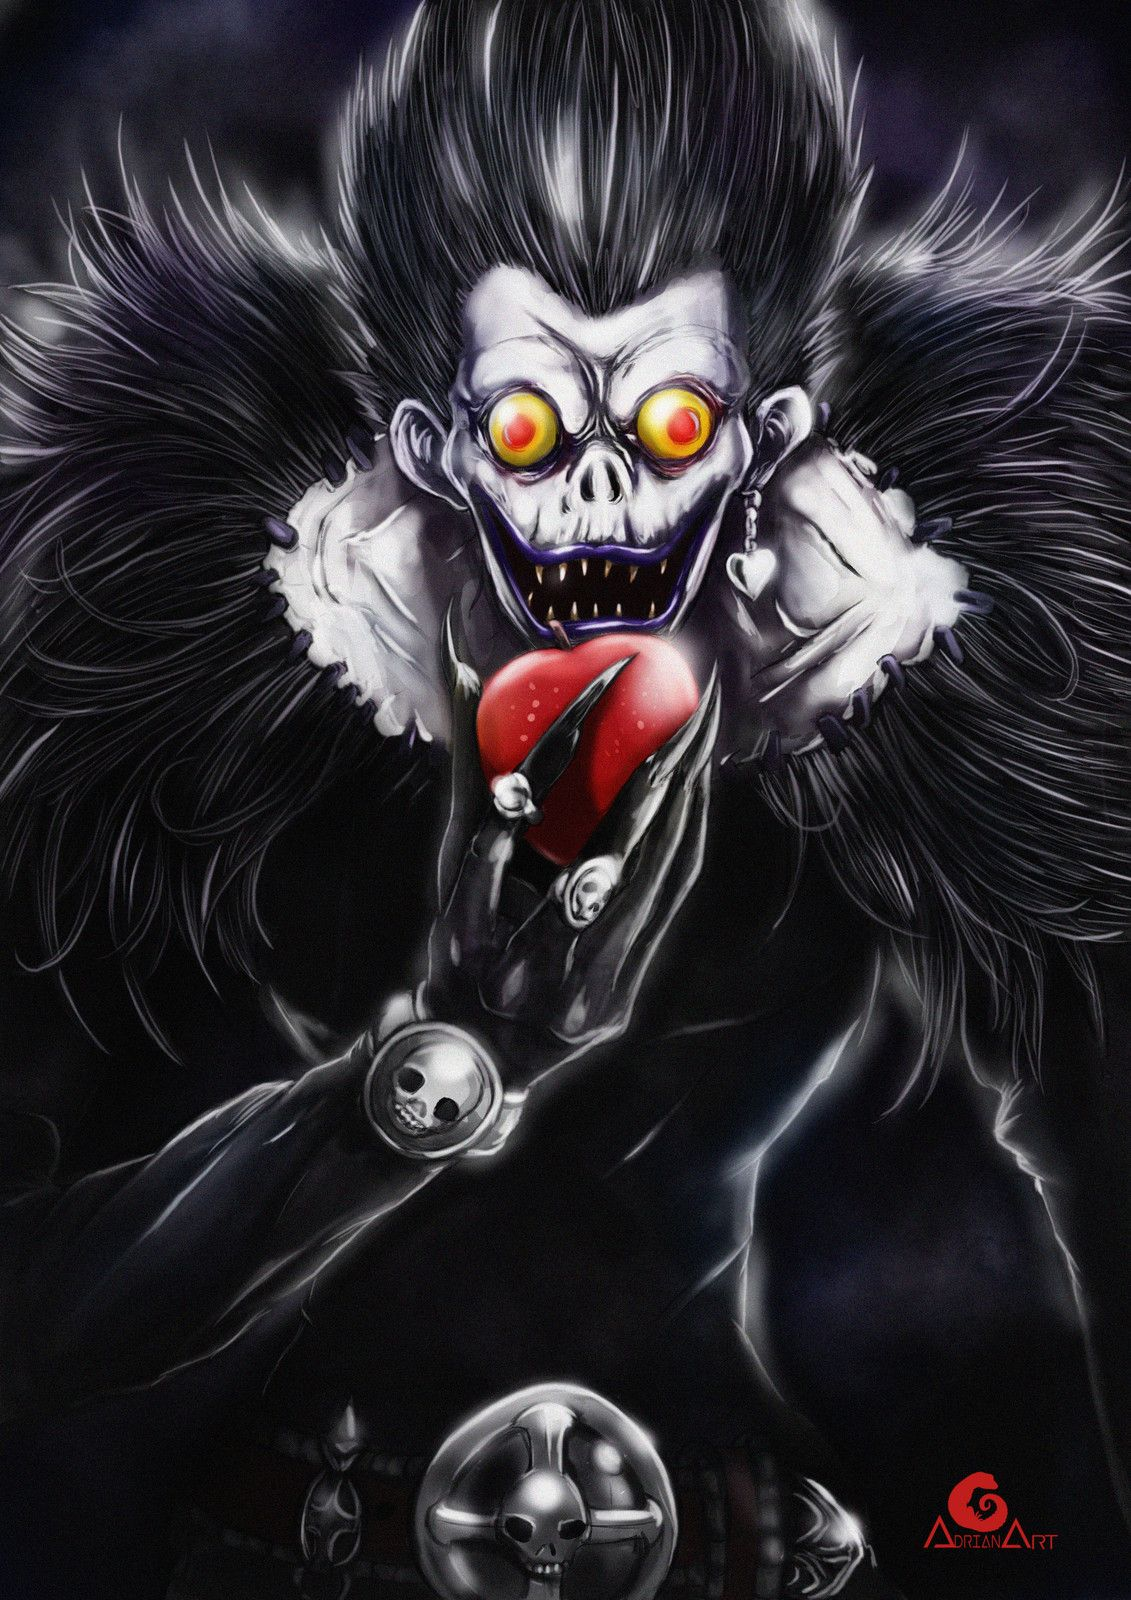 Ryuk (Death note) , Adrian Art on ArtStation at https